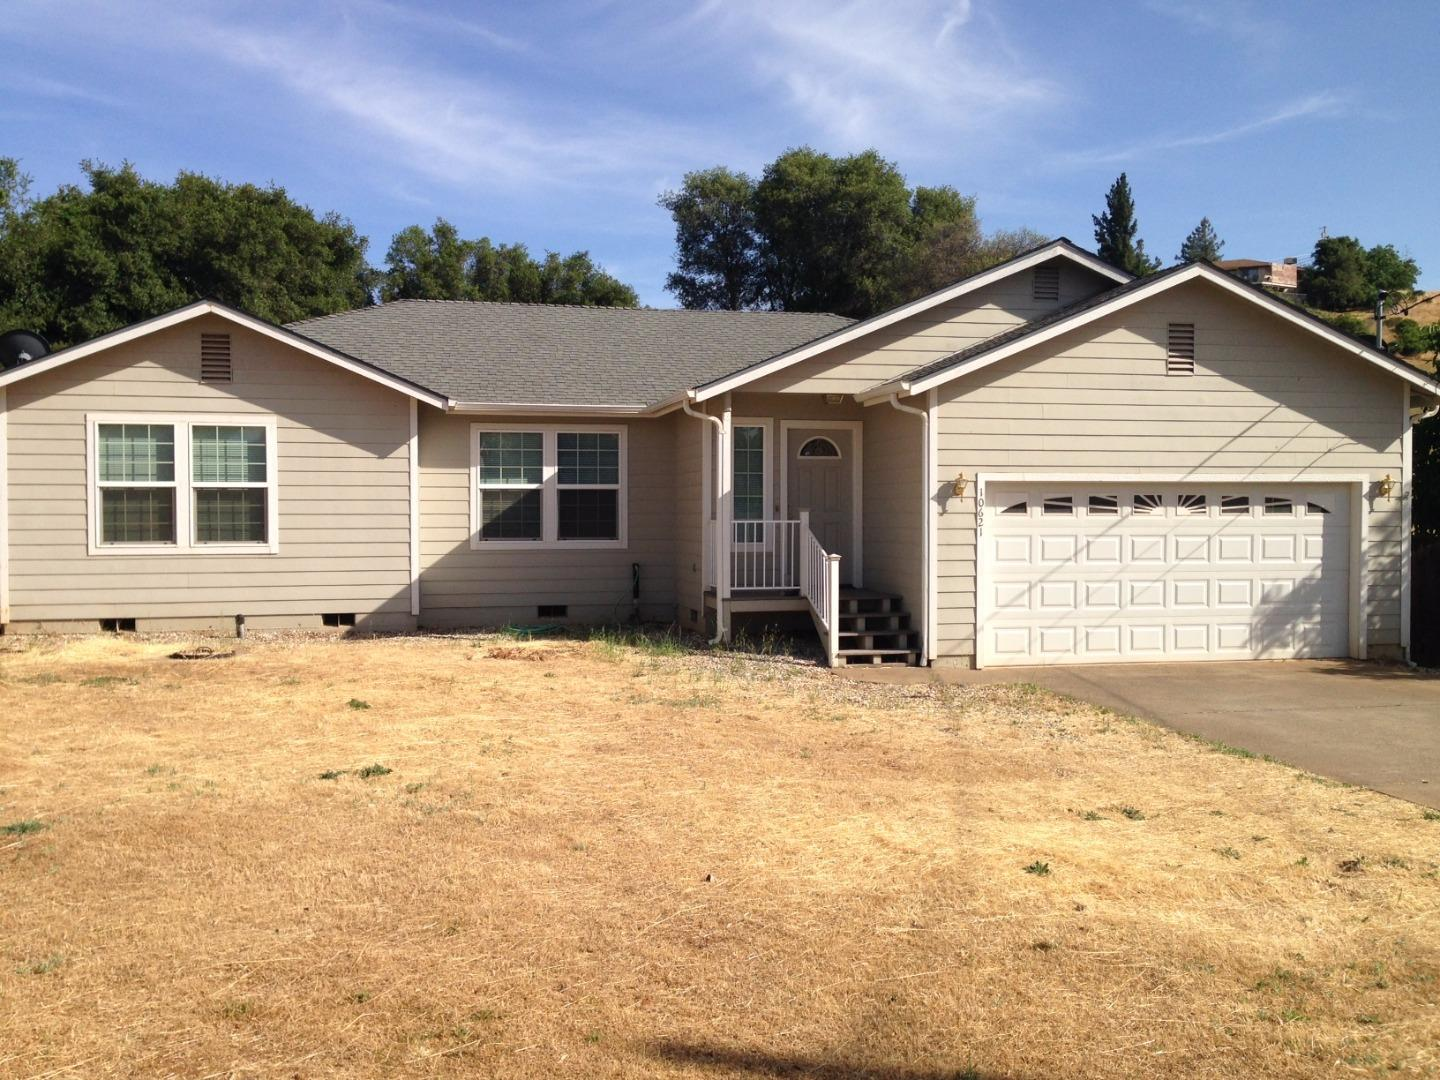 Single Family Home for Sale at 10621 Point Lakeview Road Kelseyville, California 95451 United States